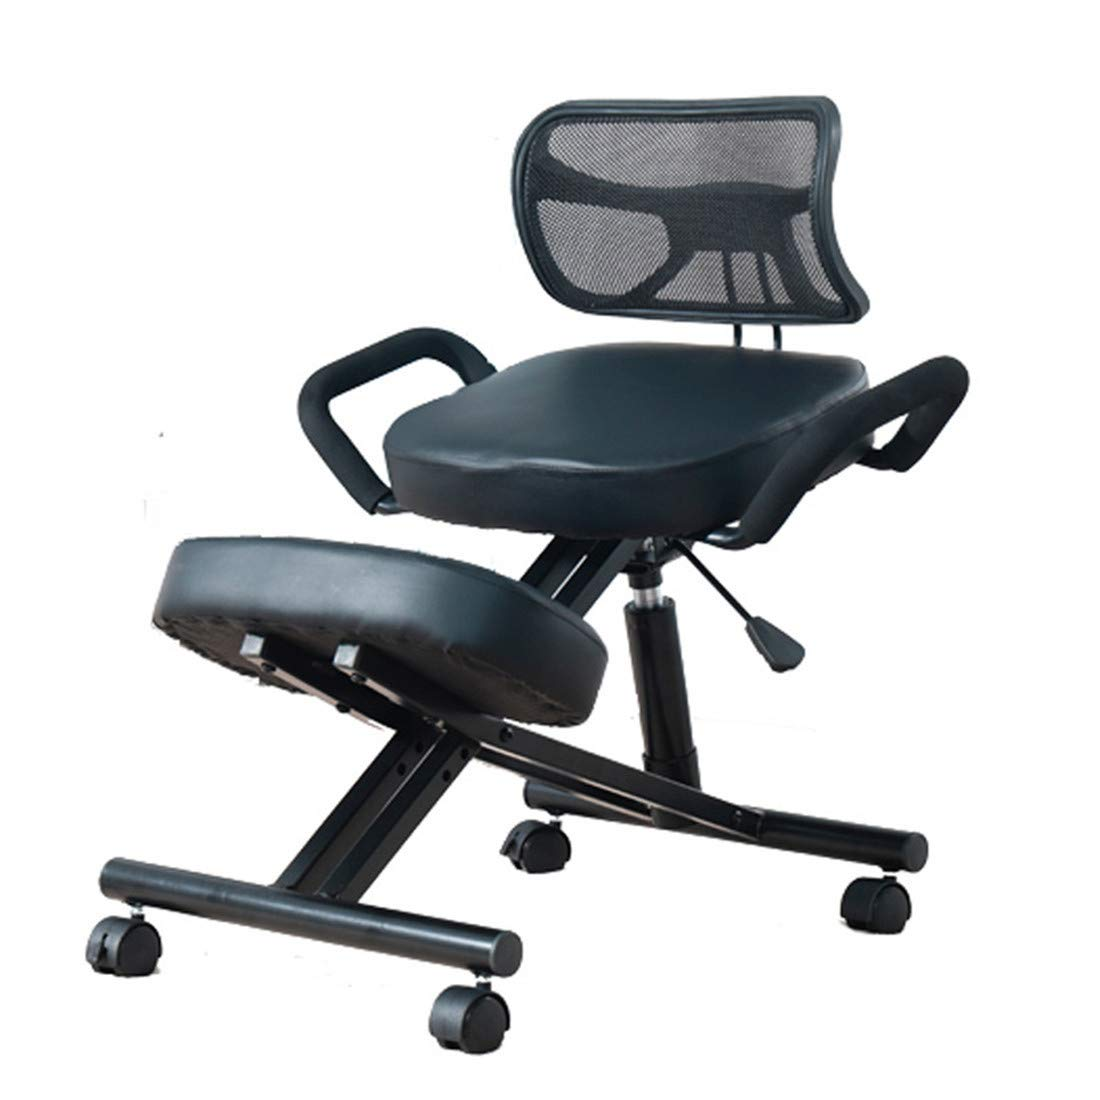 Kneeling Chairs Posture Helps Prevent Coccyx Pain Ergonomic with Handle Cushions Designed Posture with an Angled Office Seat Helps Prevent Coccyx Pain by Kneeling Chairs JM